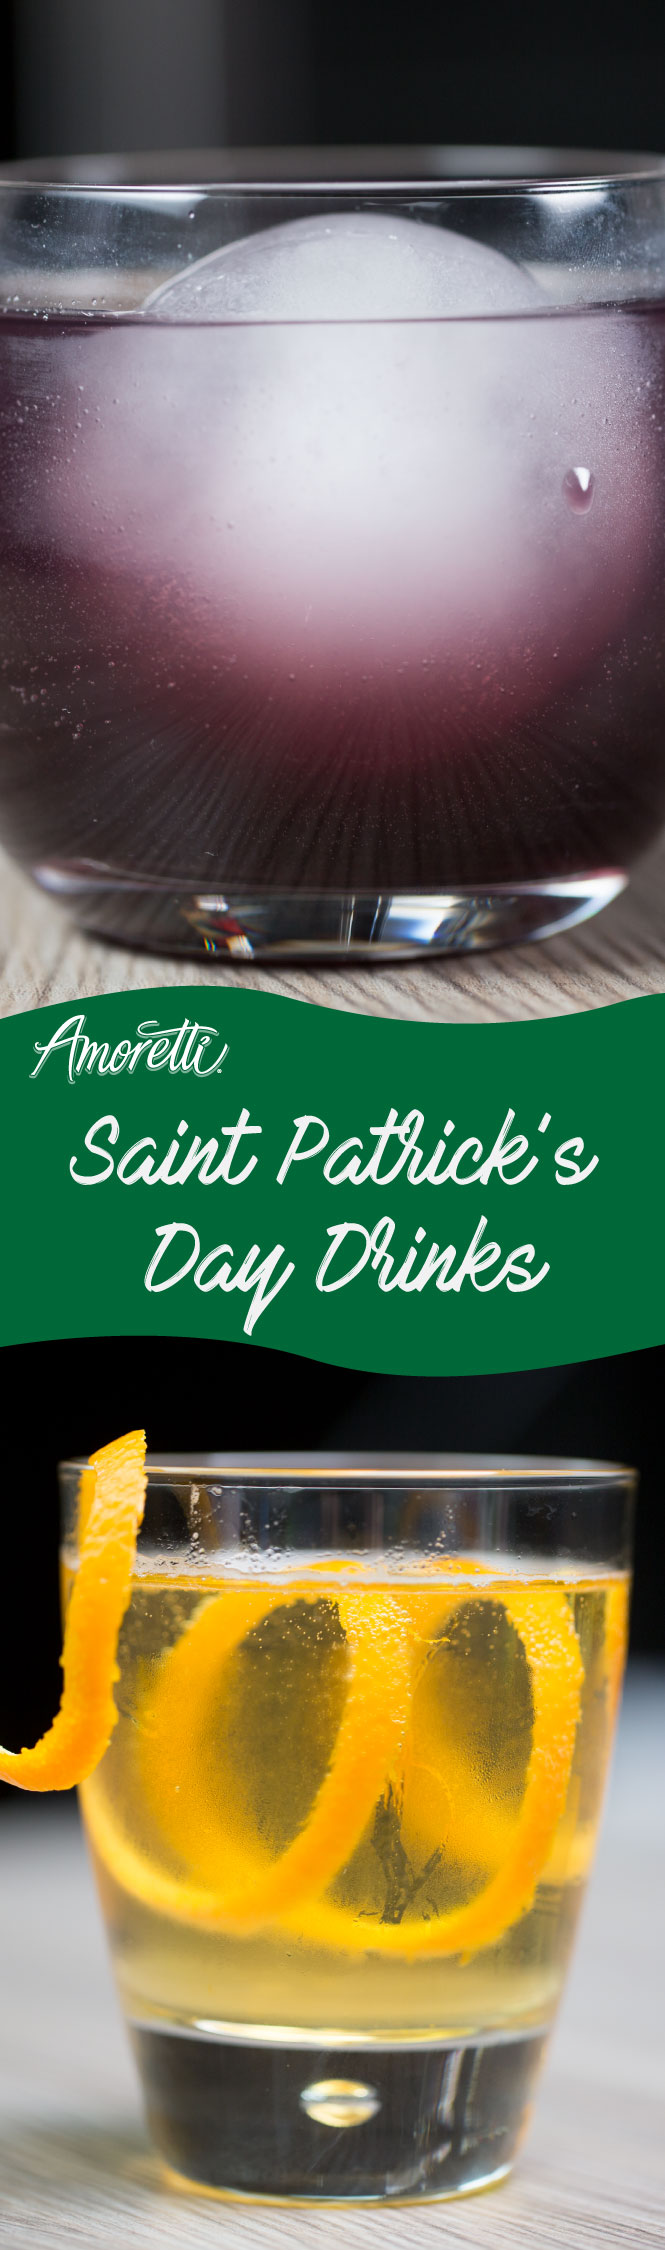 Celebrate St. Patrick's Day with two fun cocktails!